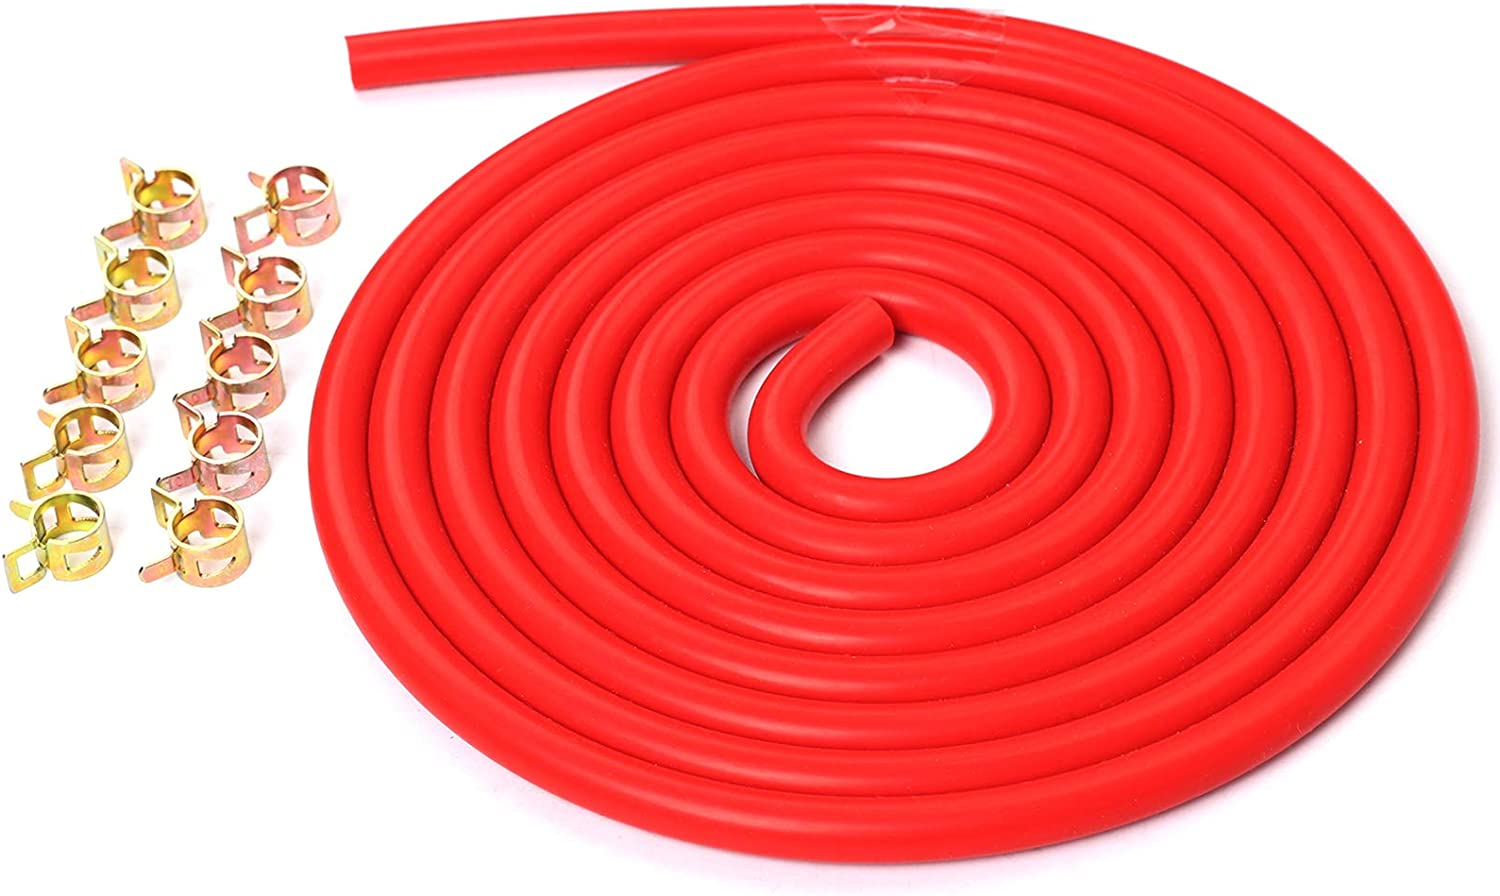 10 Feet Red 3//16//5mm Silicone Vacuum Hose 10 PCS 10mm Spring Clip Clamps Kit